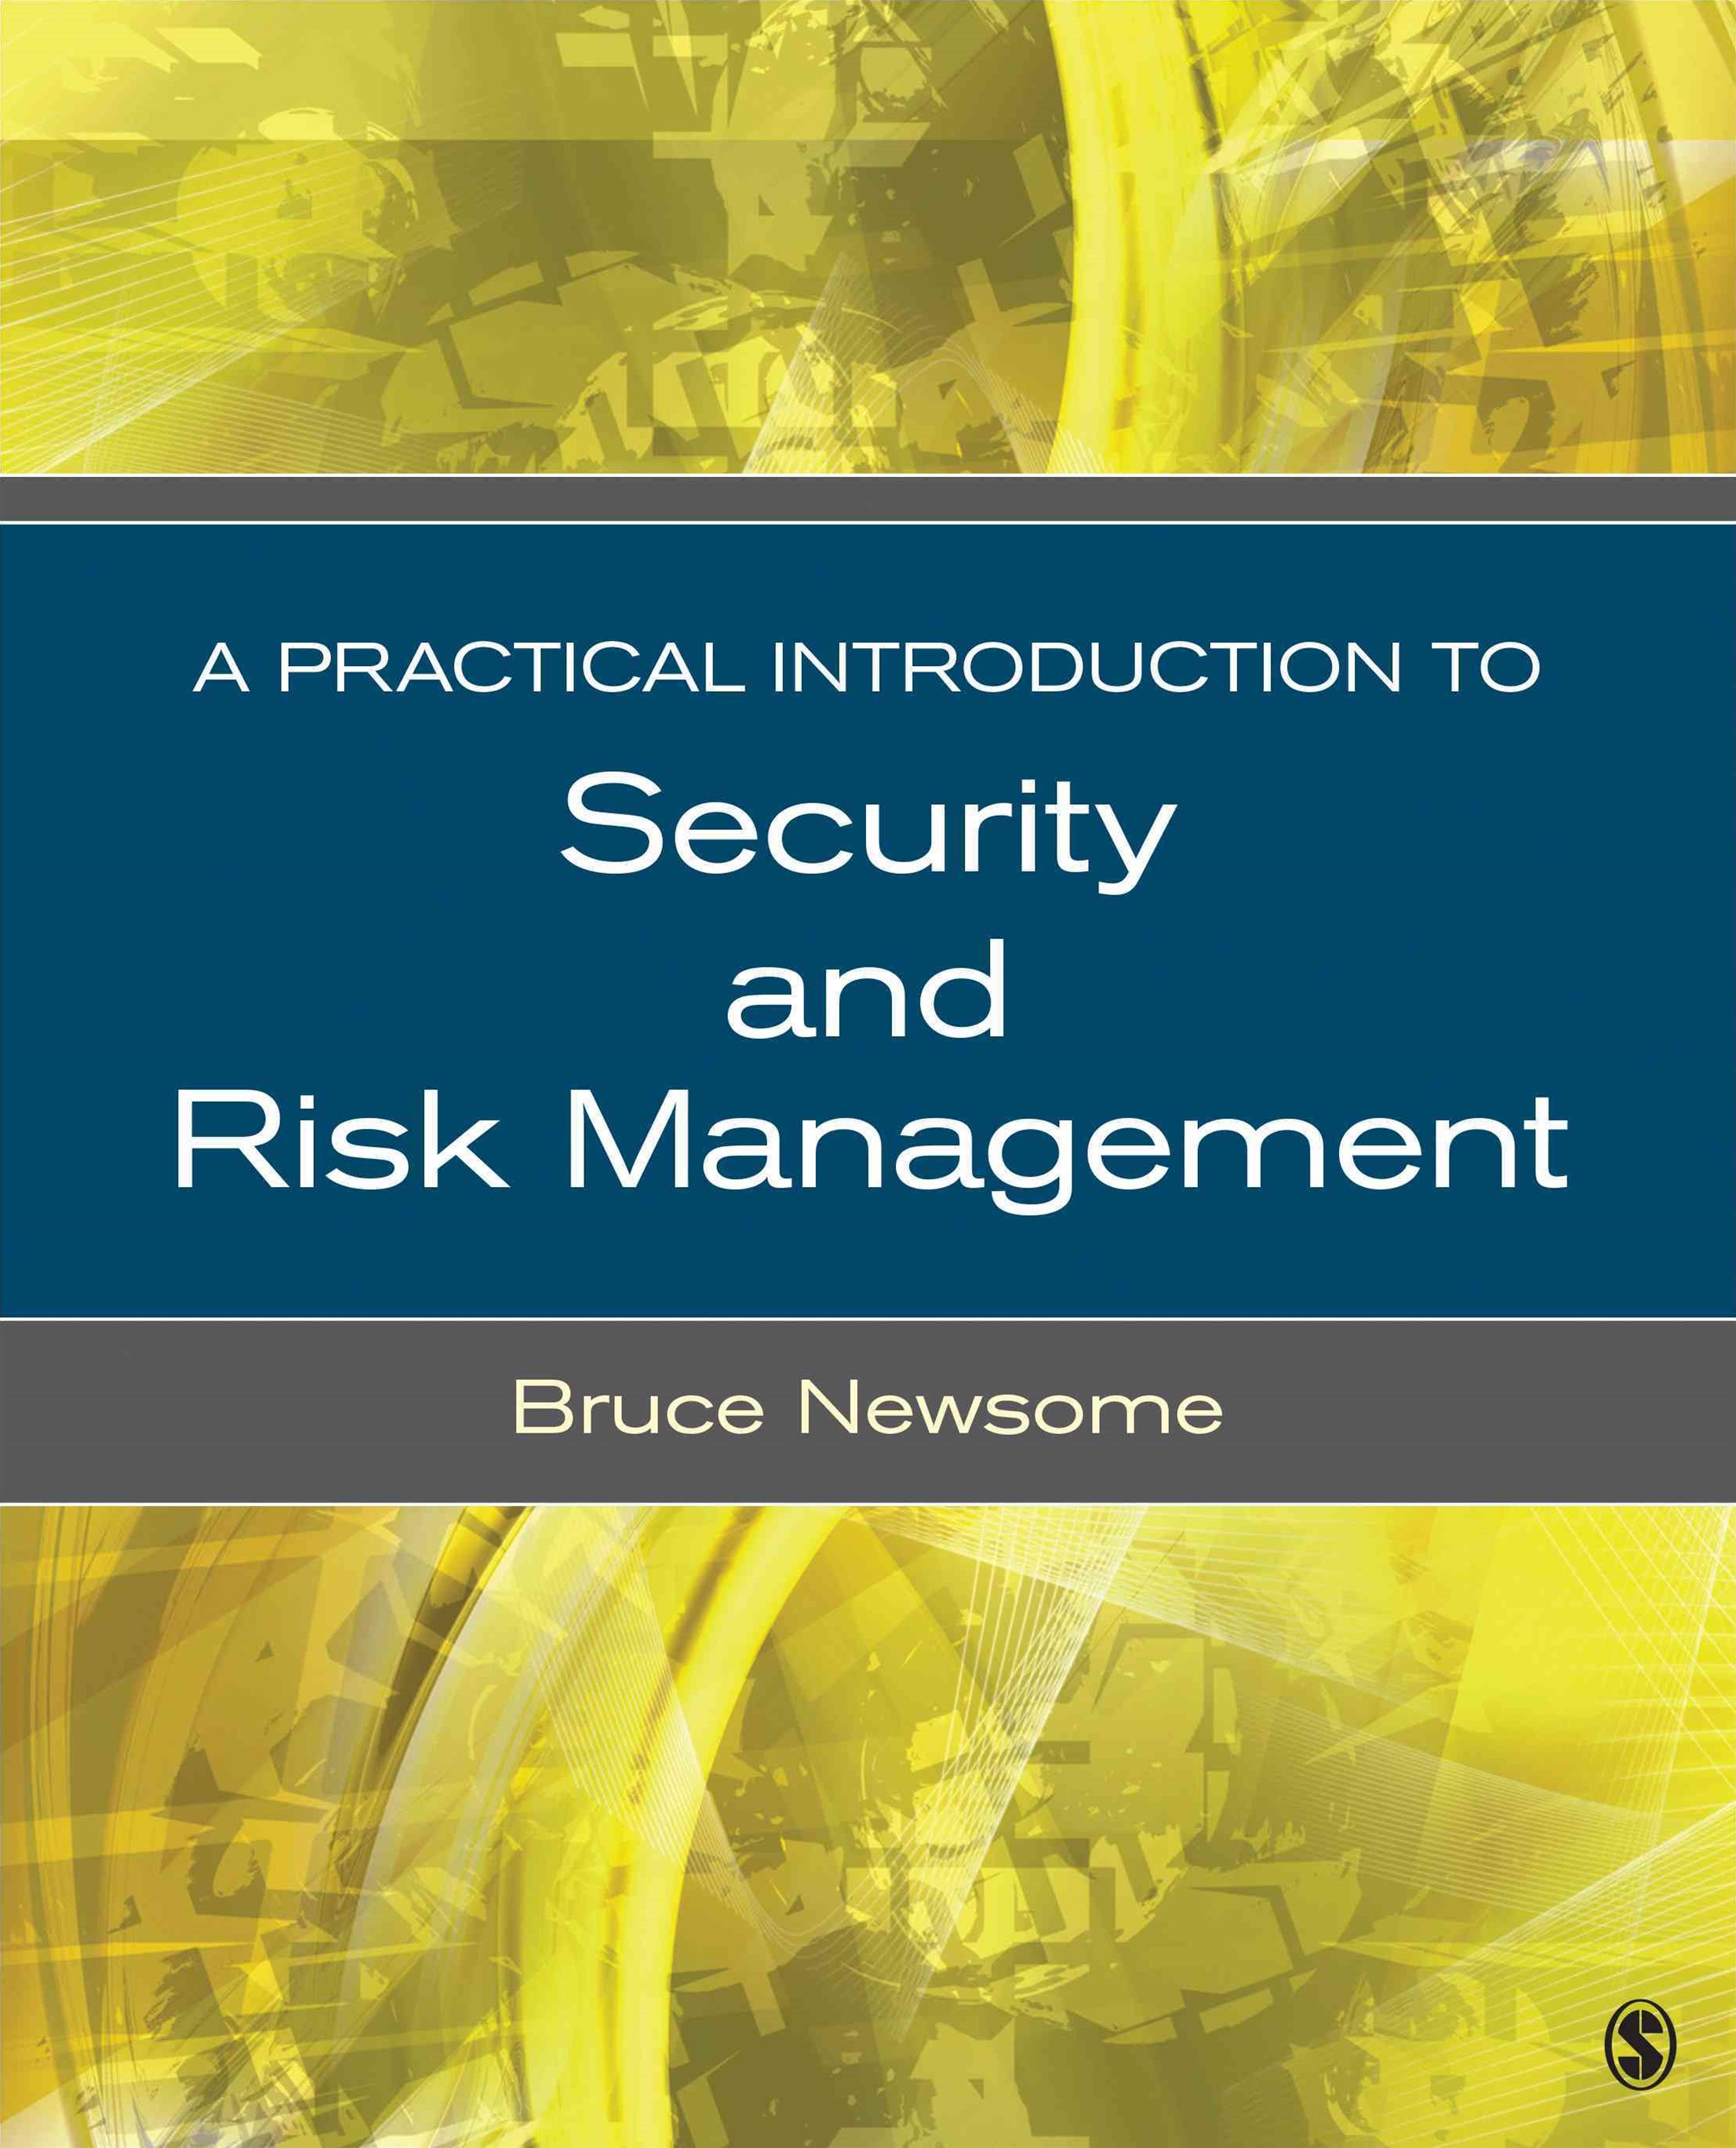 Practical Introduction to Security and Risk Management